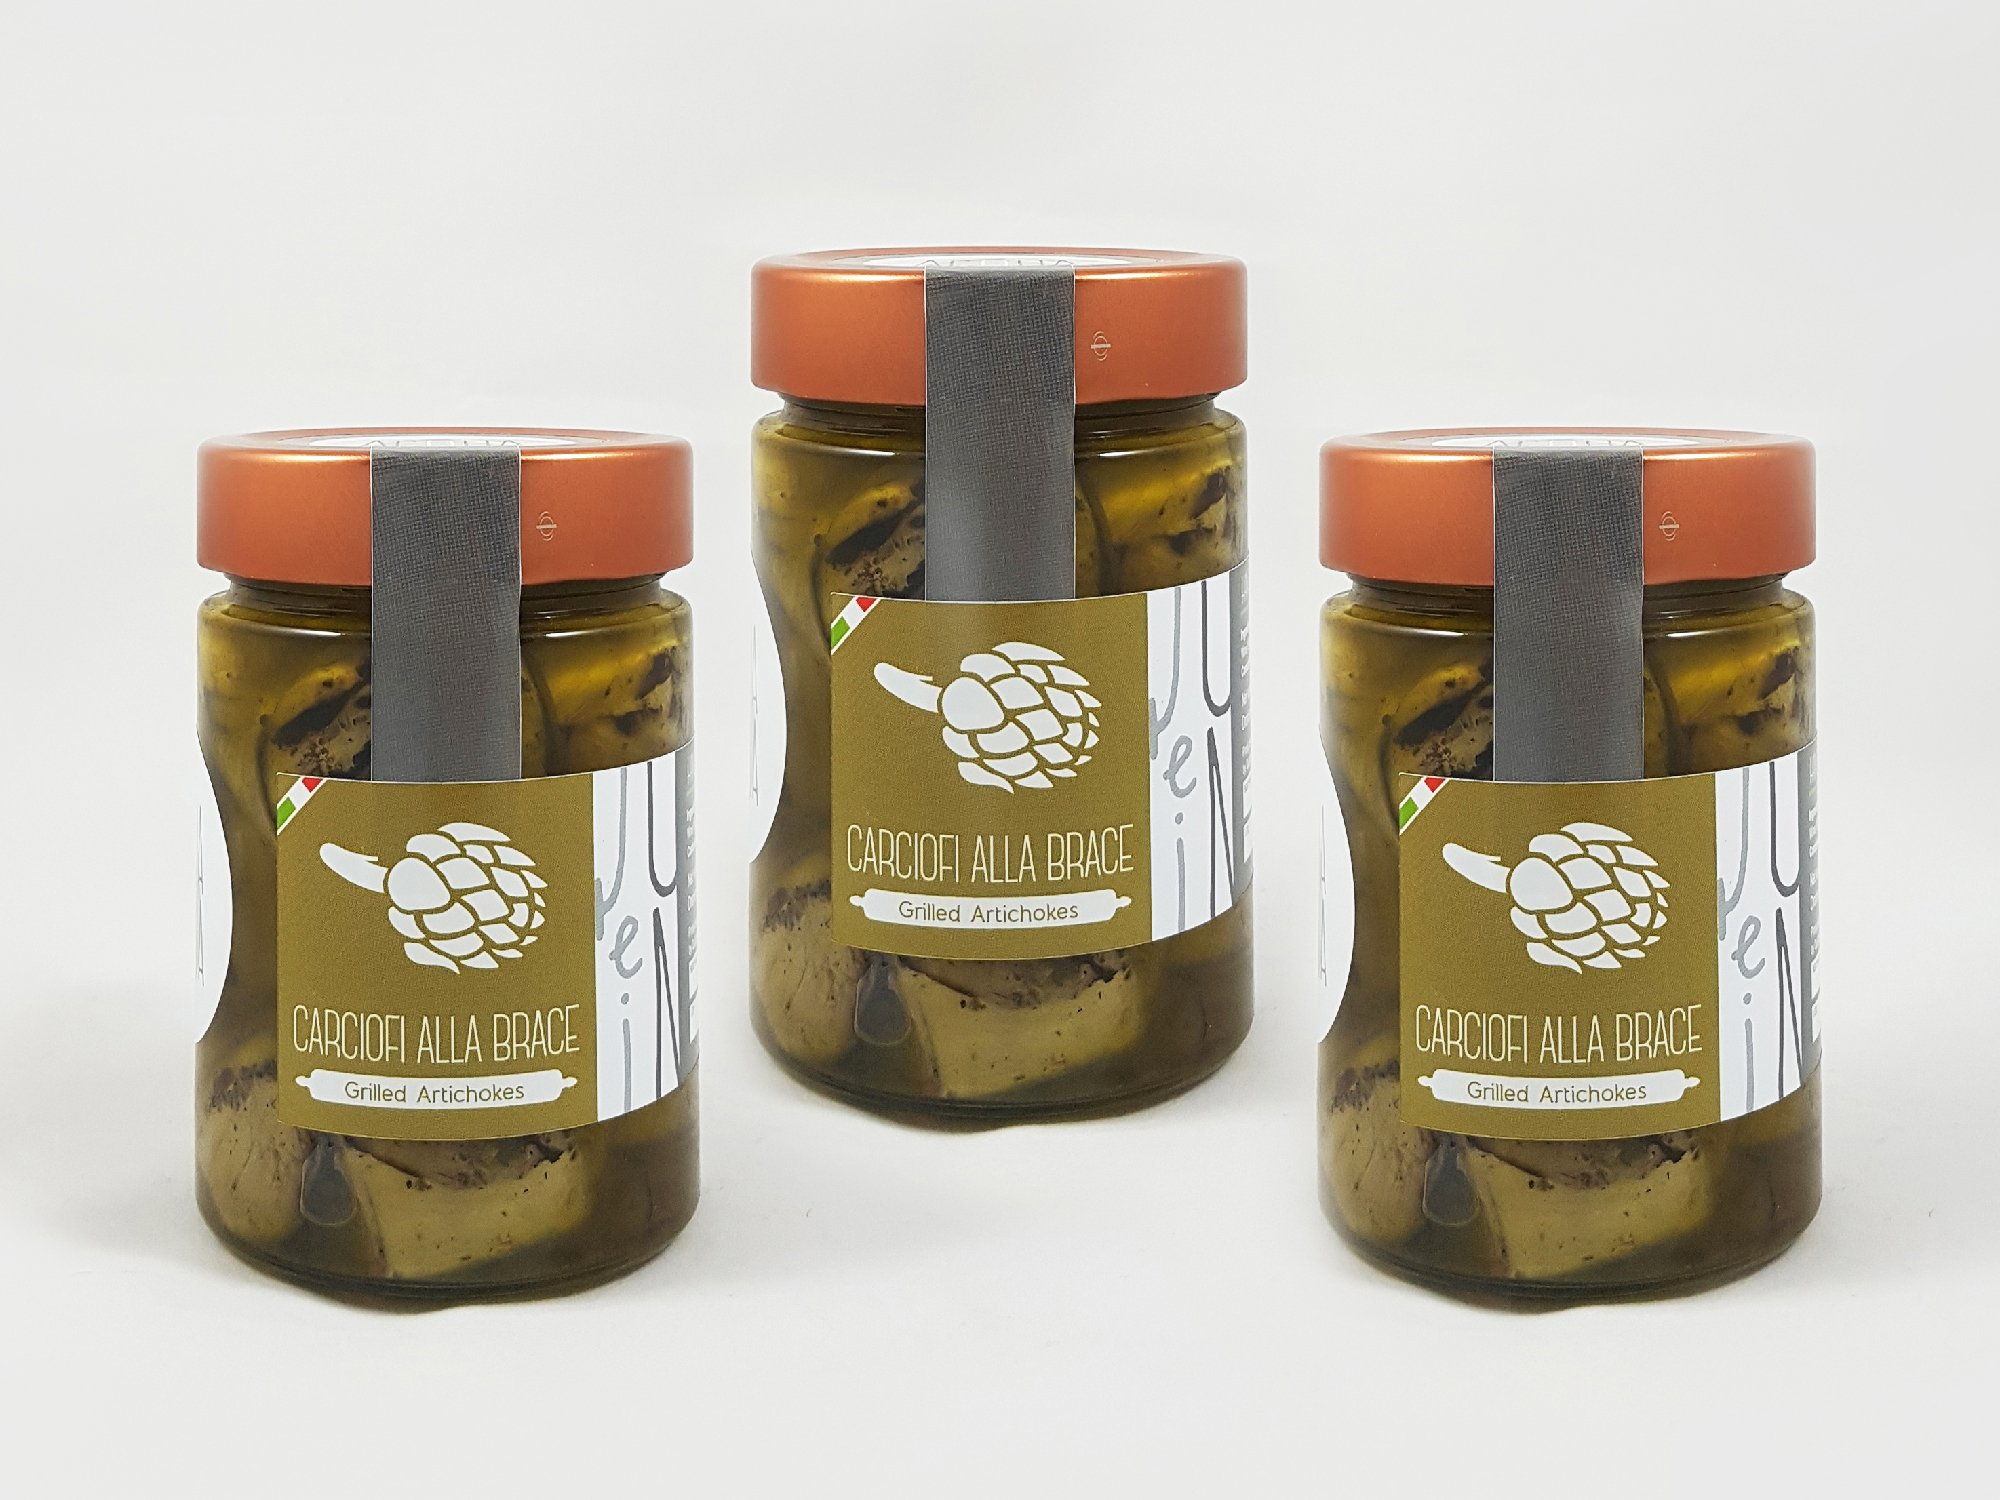 Grilled Artichokes in E.V.O. Oil pack of 3